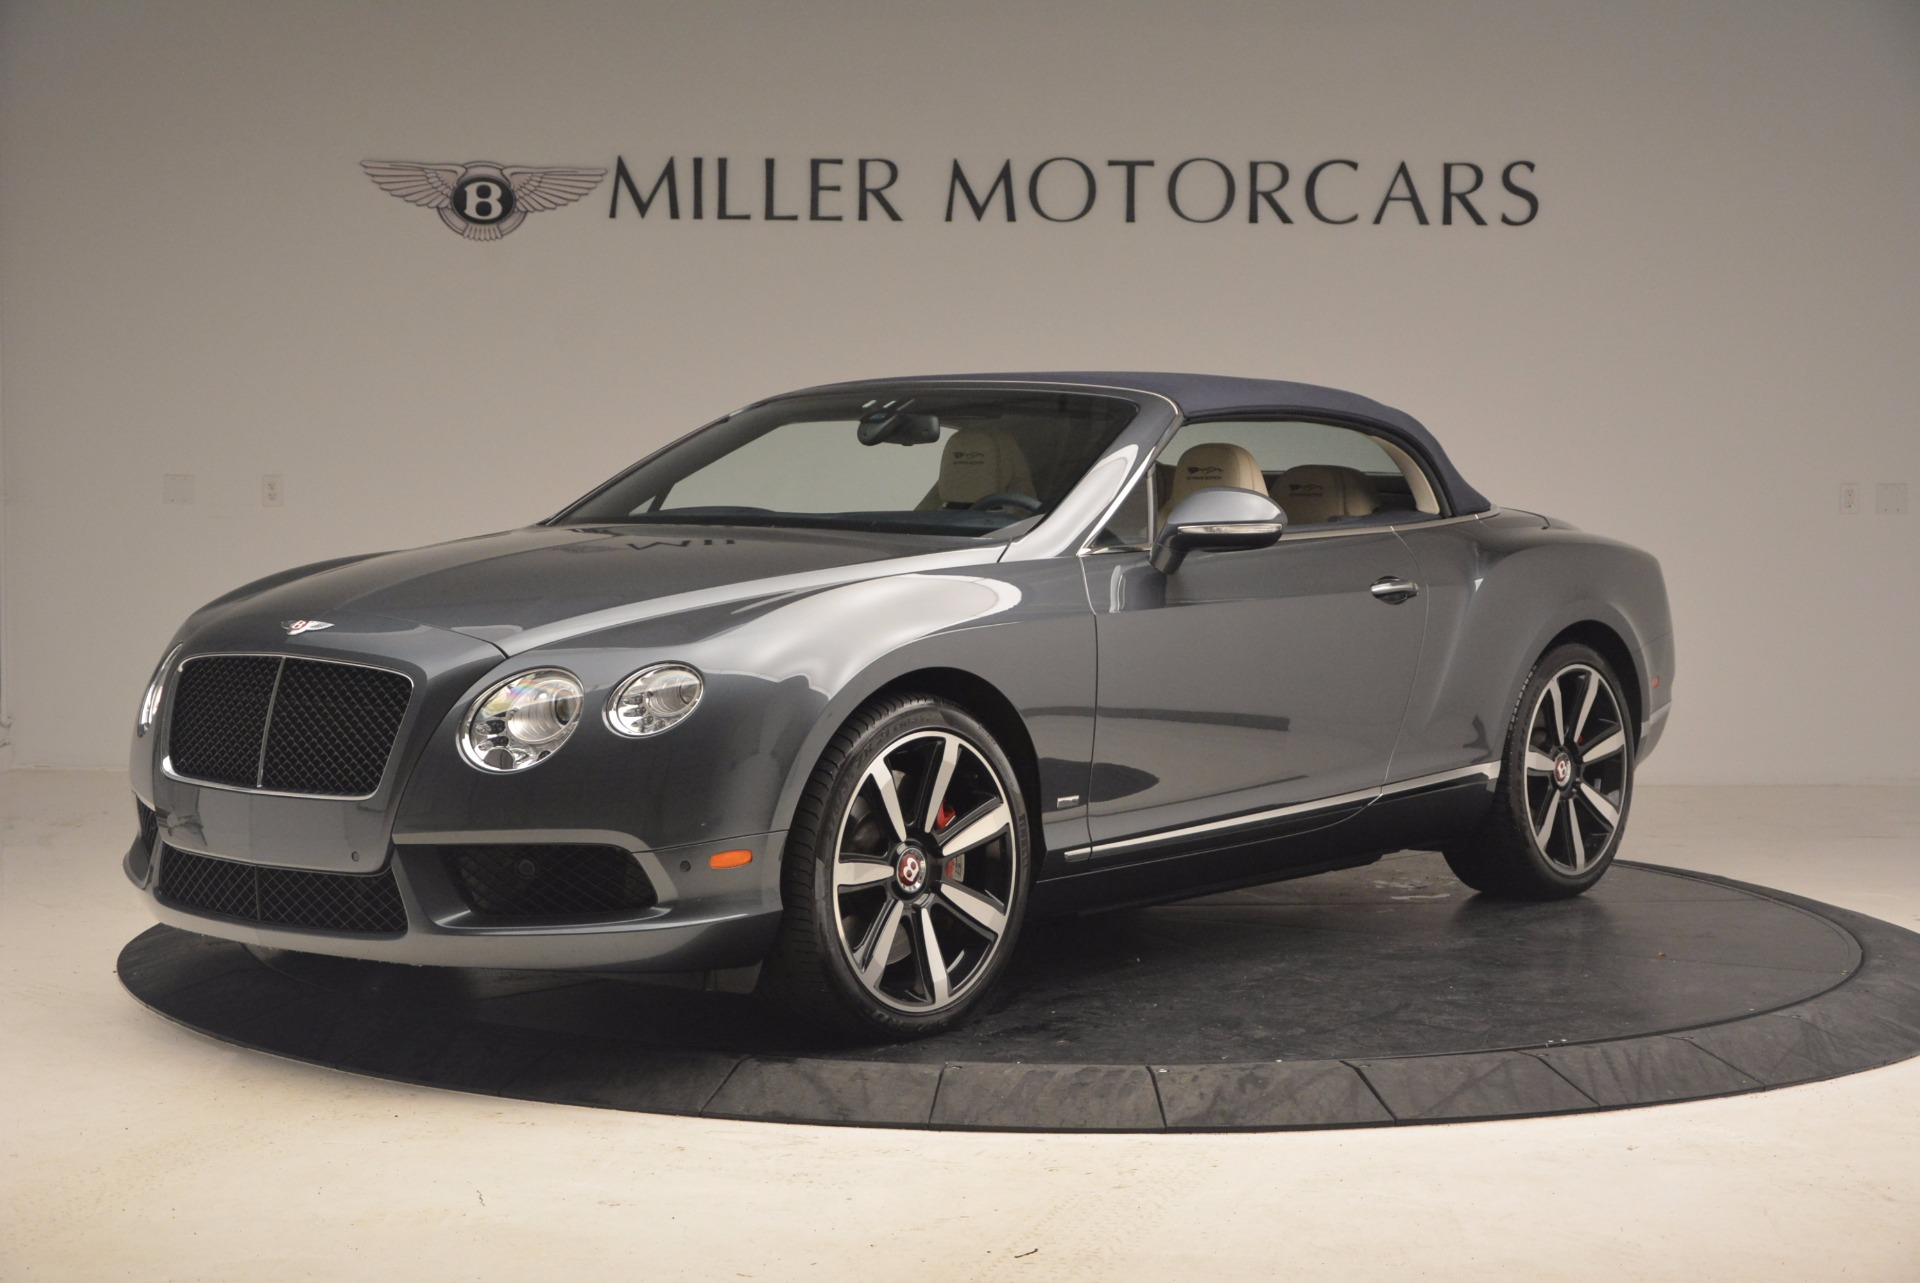 Used 2013 Bentley Continental GT V8 Le Mans Edition, 1 of 48 For Sale In Greenwich, CT. Alfa Romeo of Greenwich, 7226 1288_p15